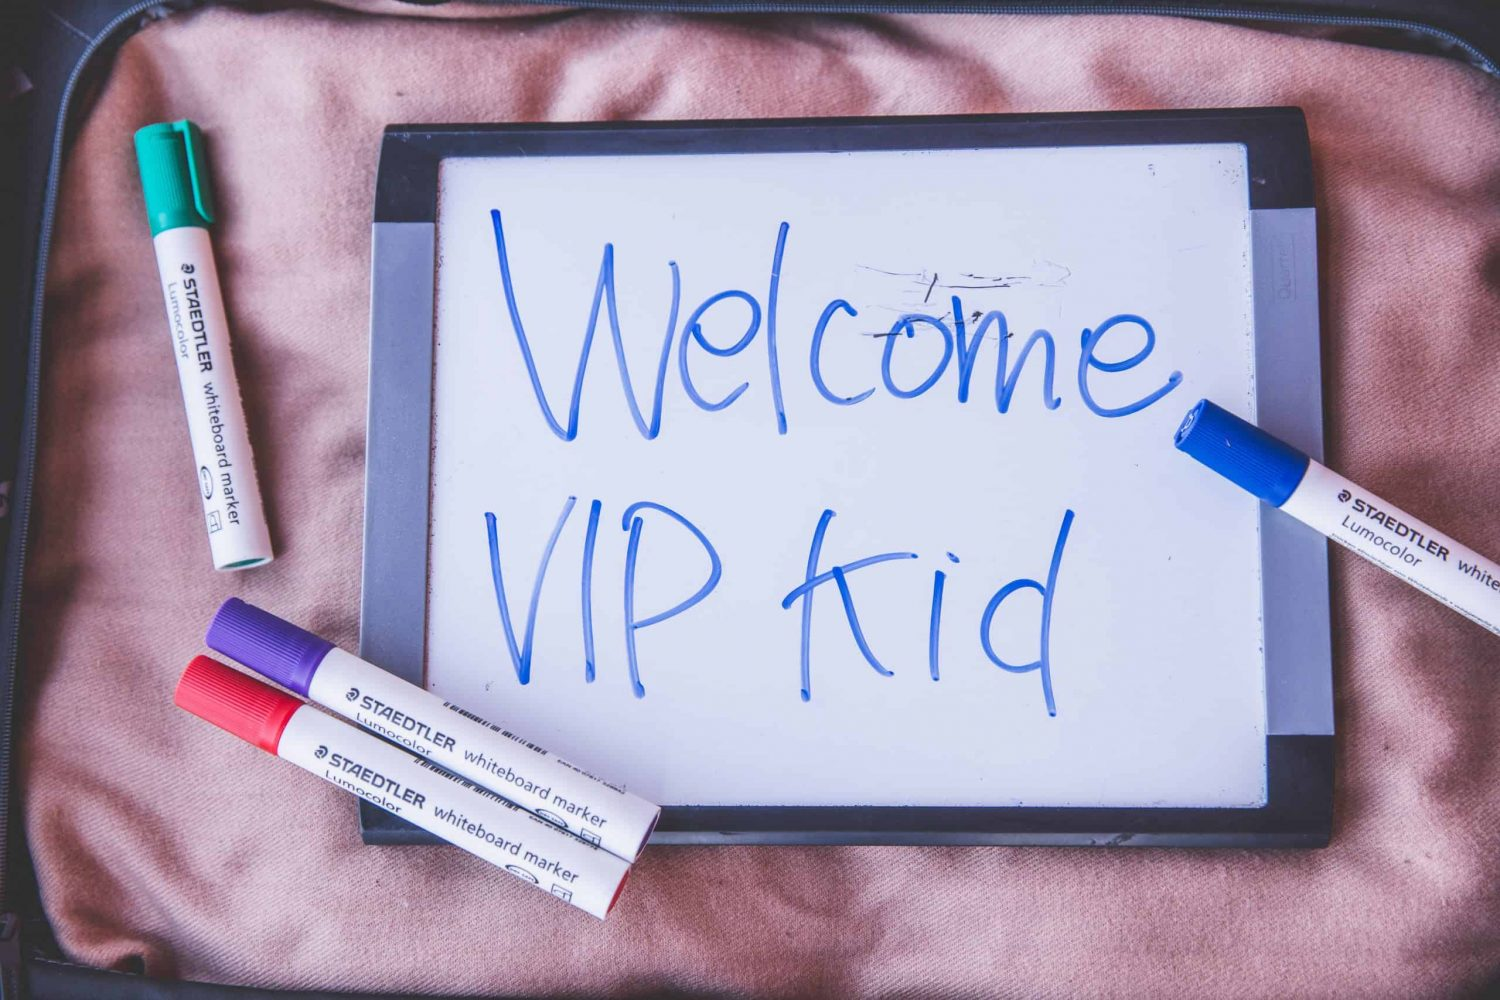 A whiteboard is an important prop for VIP Kid teachers